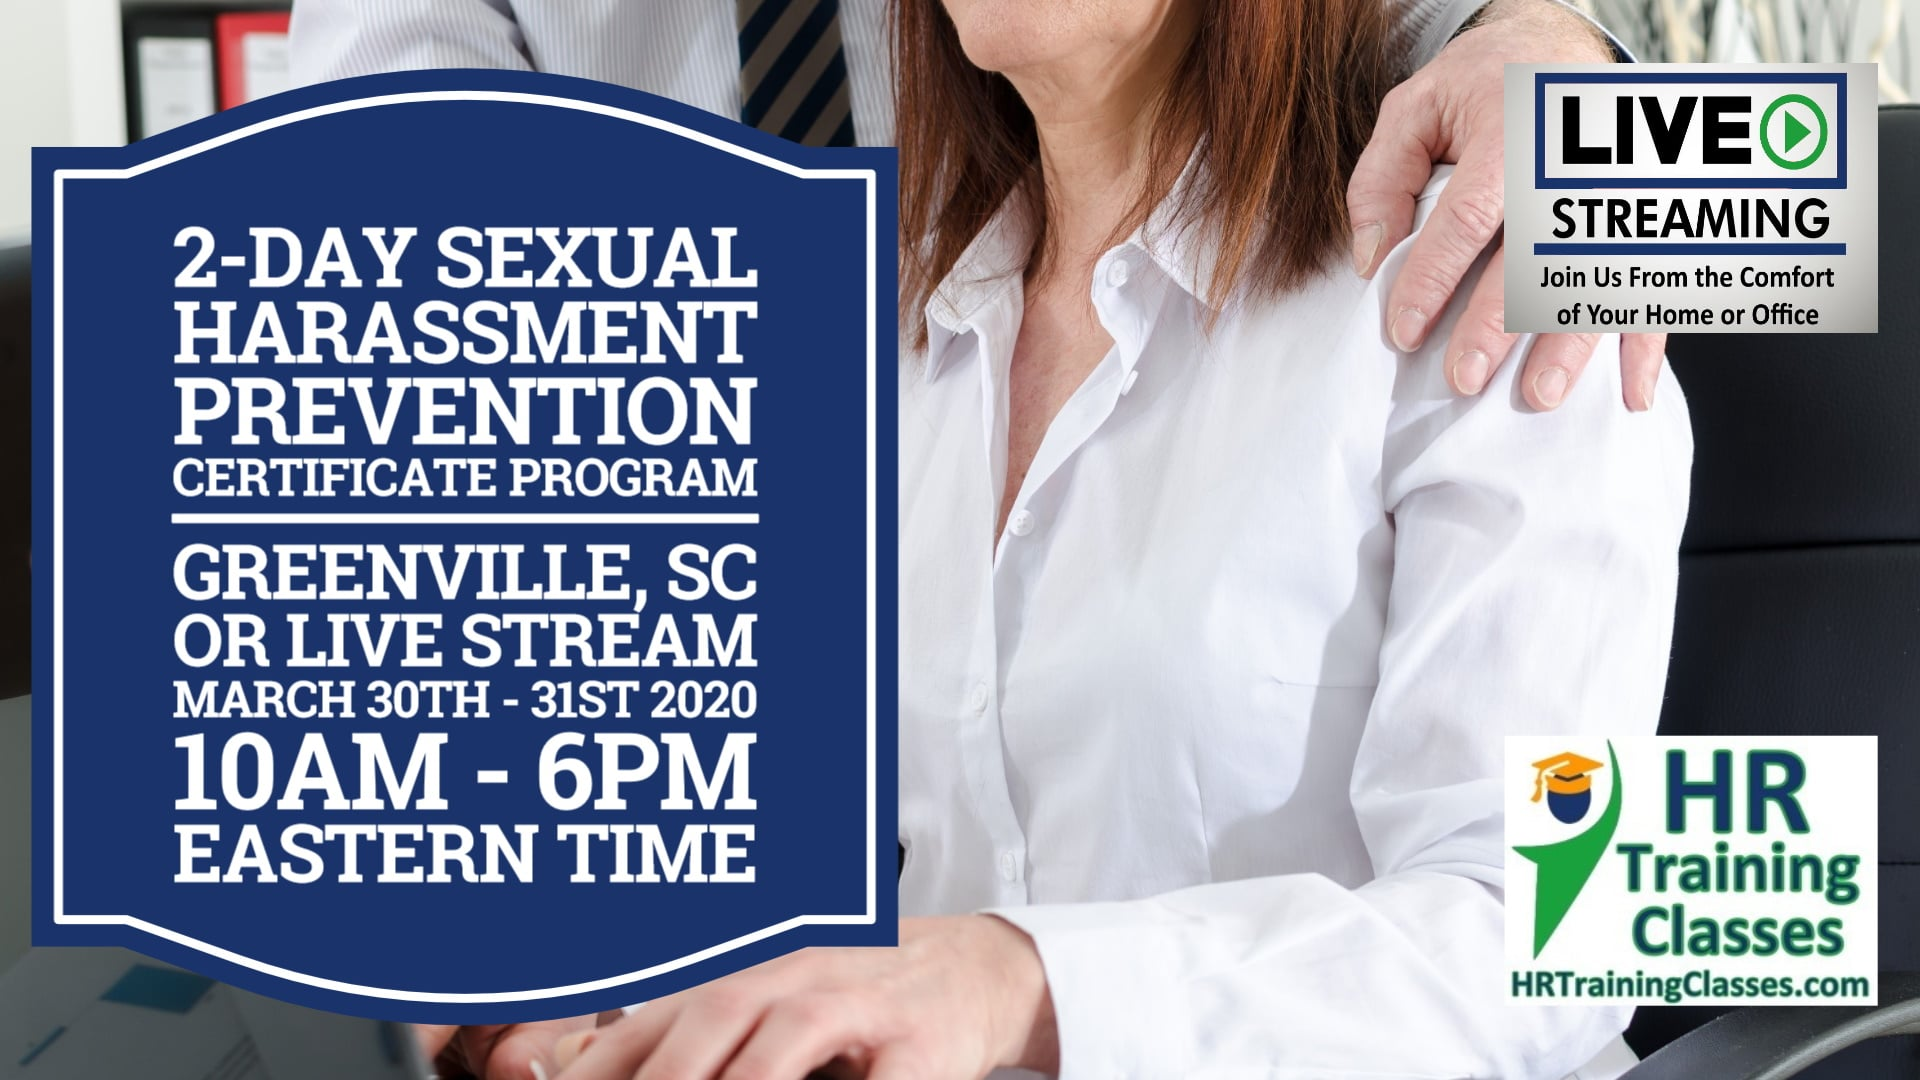 2 Day Sexual Harassment Certificate Program with Elga Lejarza-Penn in Greenville SC or join us online via Live Stream Webinar! Starting March 30 2020